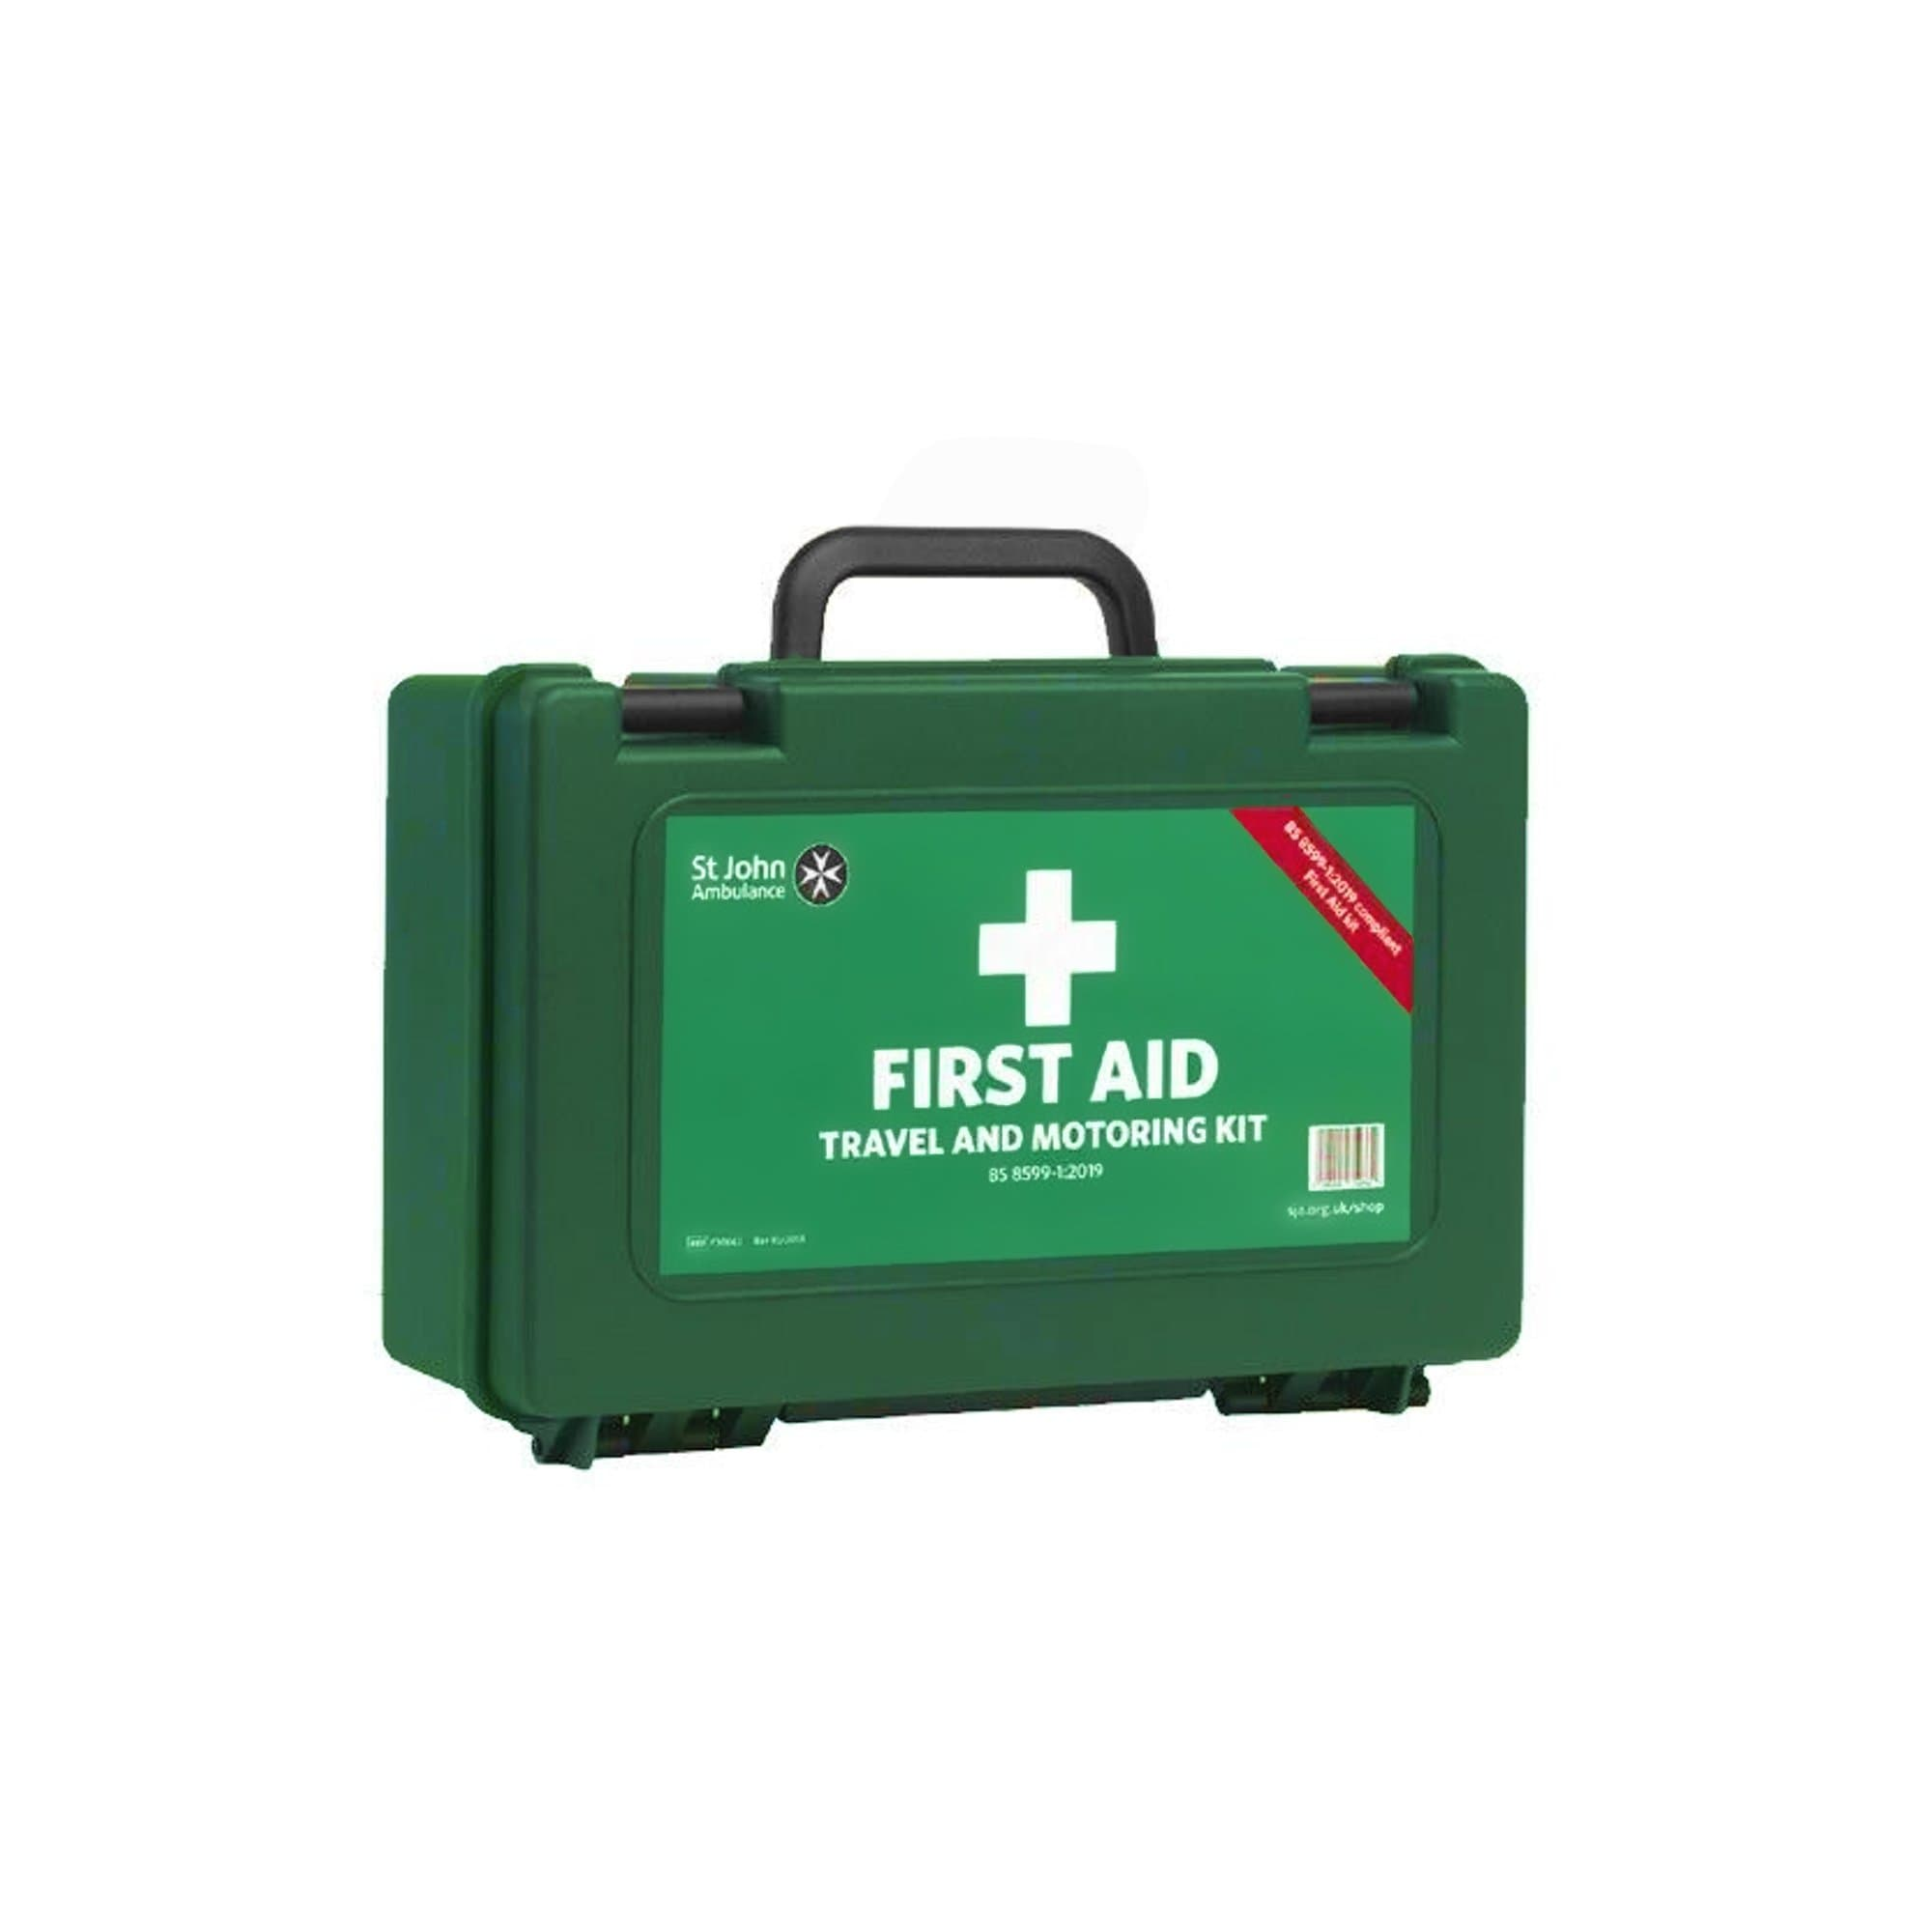 St John Ambulance BSI Travel and Motoring First Aid KIT - Window Cleaning Warehouse Ltd